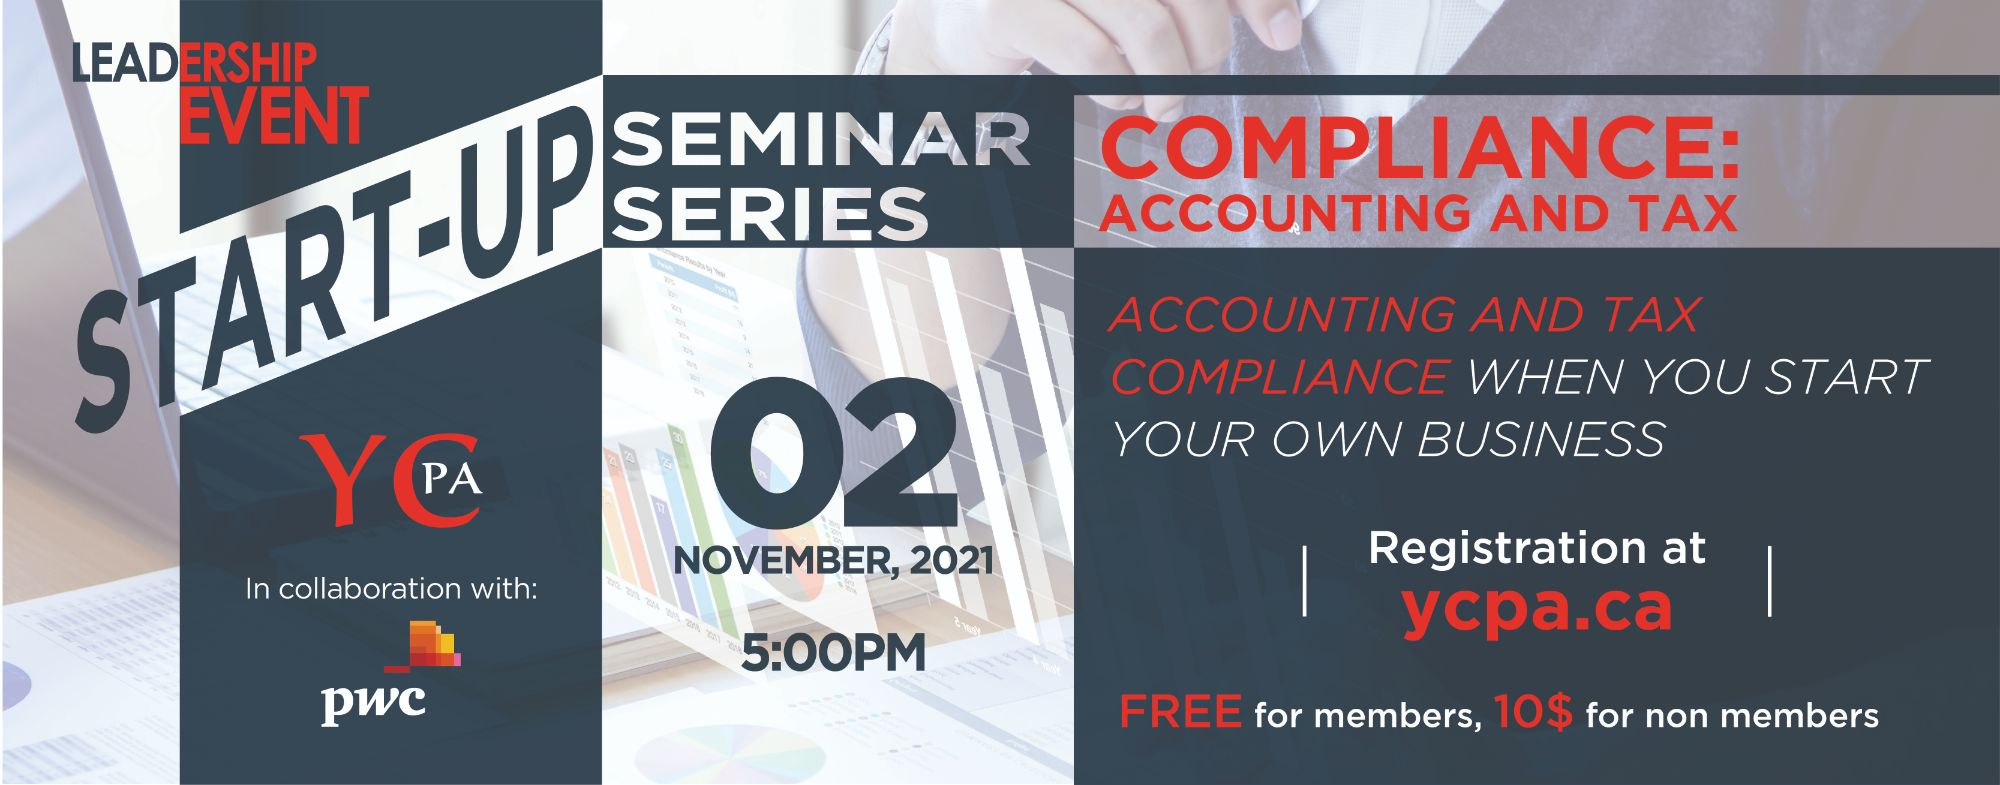 Leadership Event - Startup Seminar Series - Compliance: Accounting and Tax